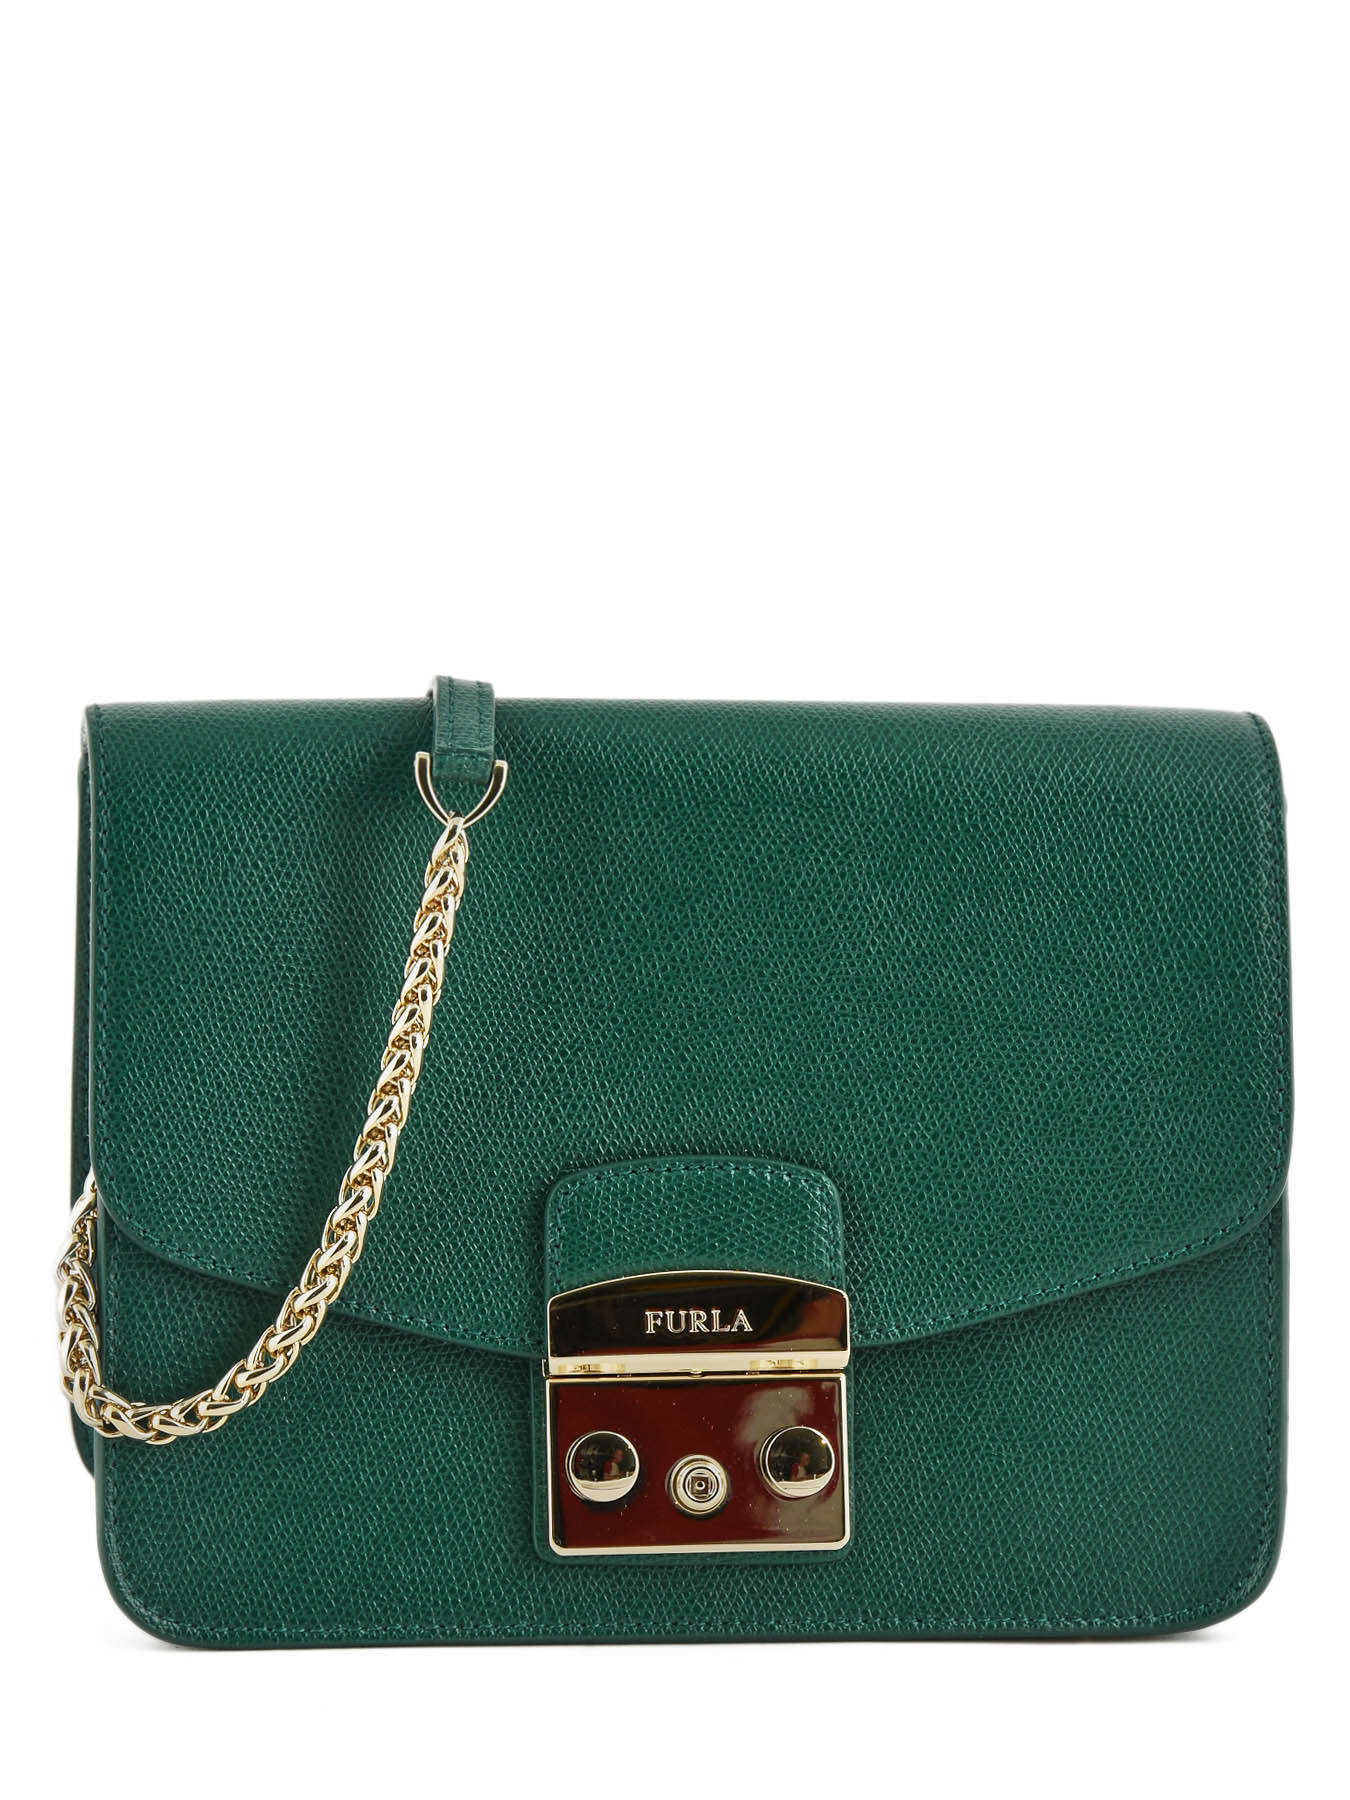 ... Shoulder Bag Metropolis Leather Furla Green metropolis EPO-BNF8 ...